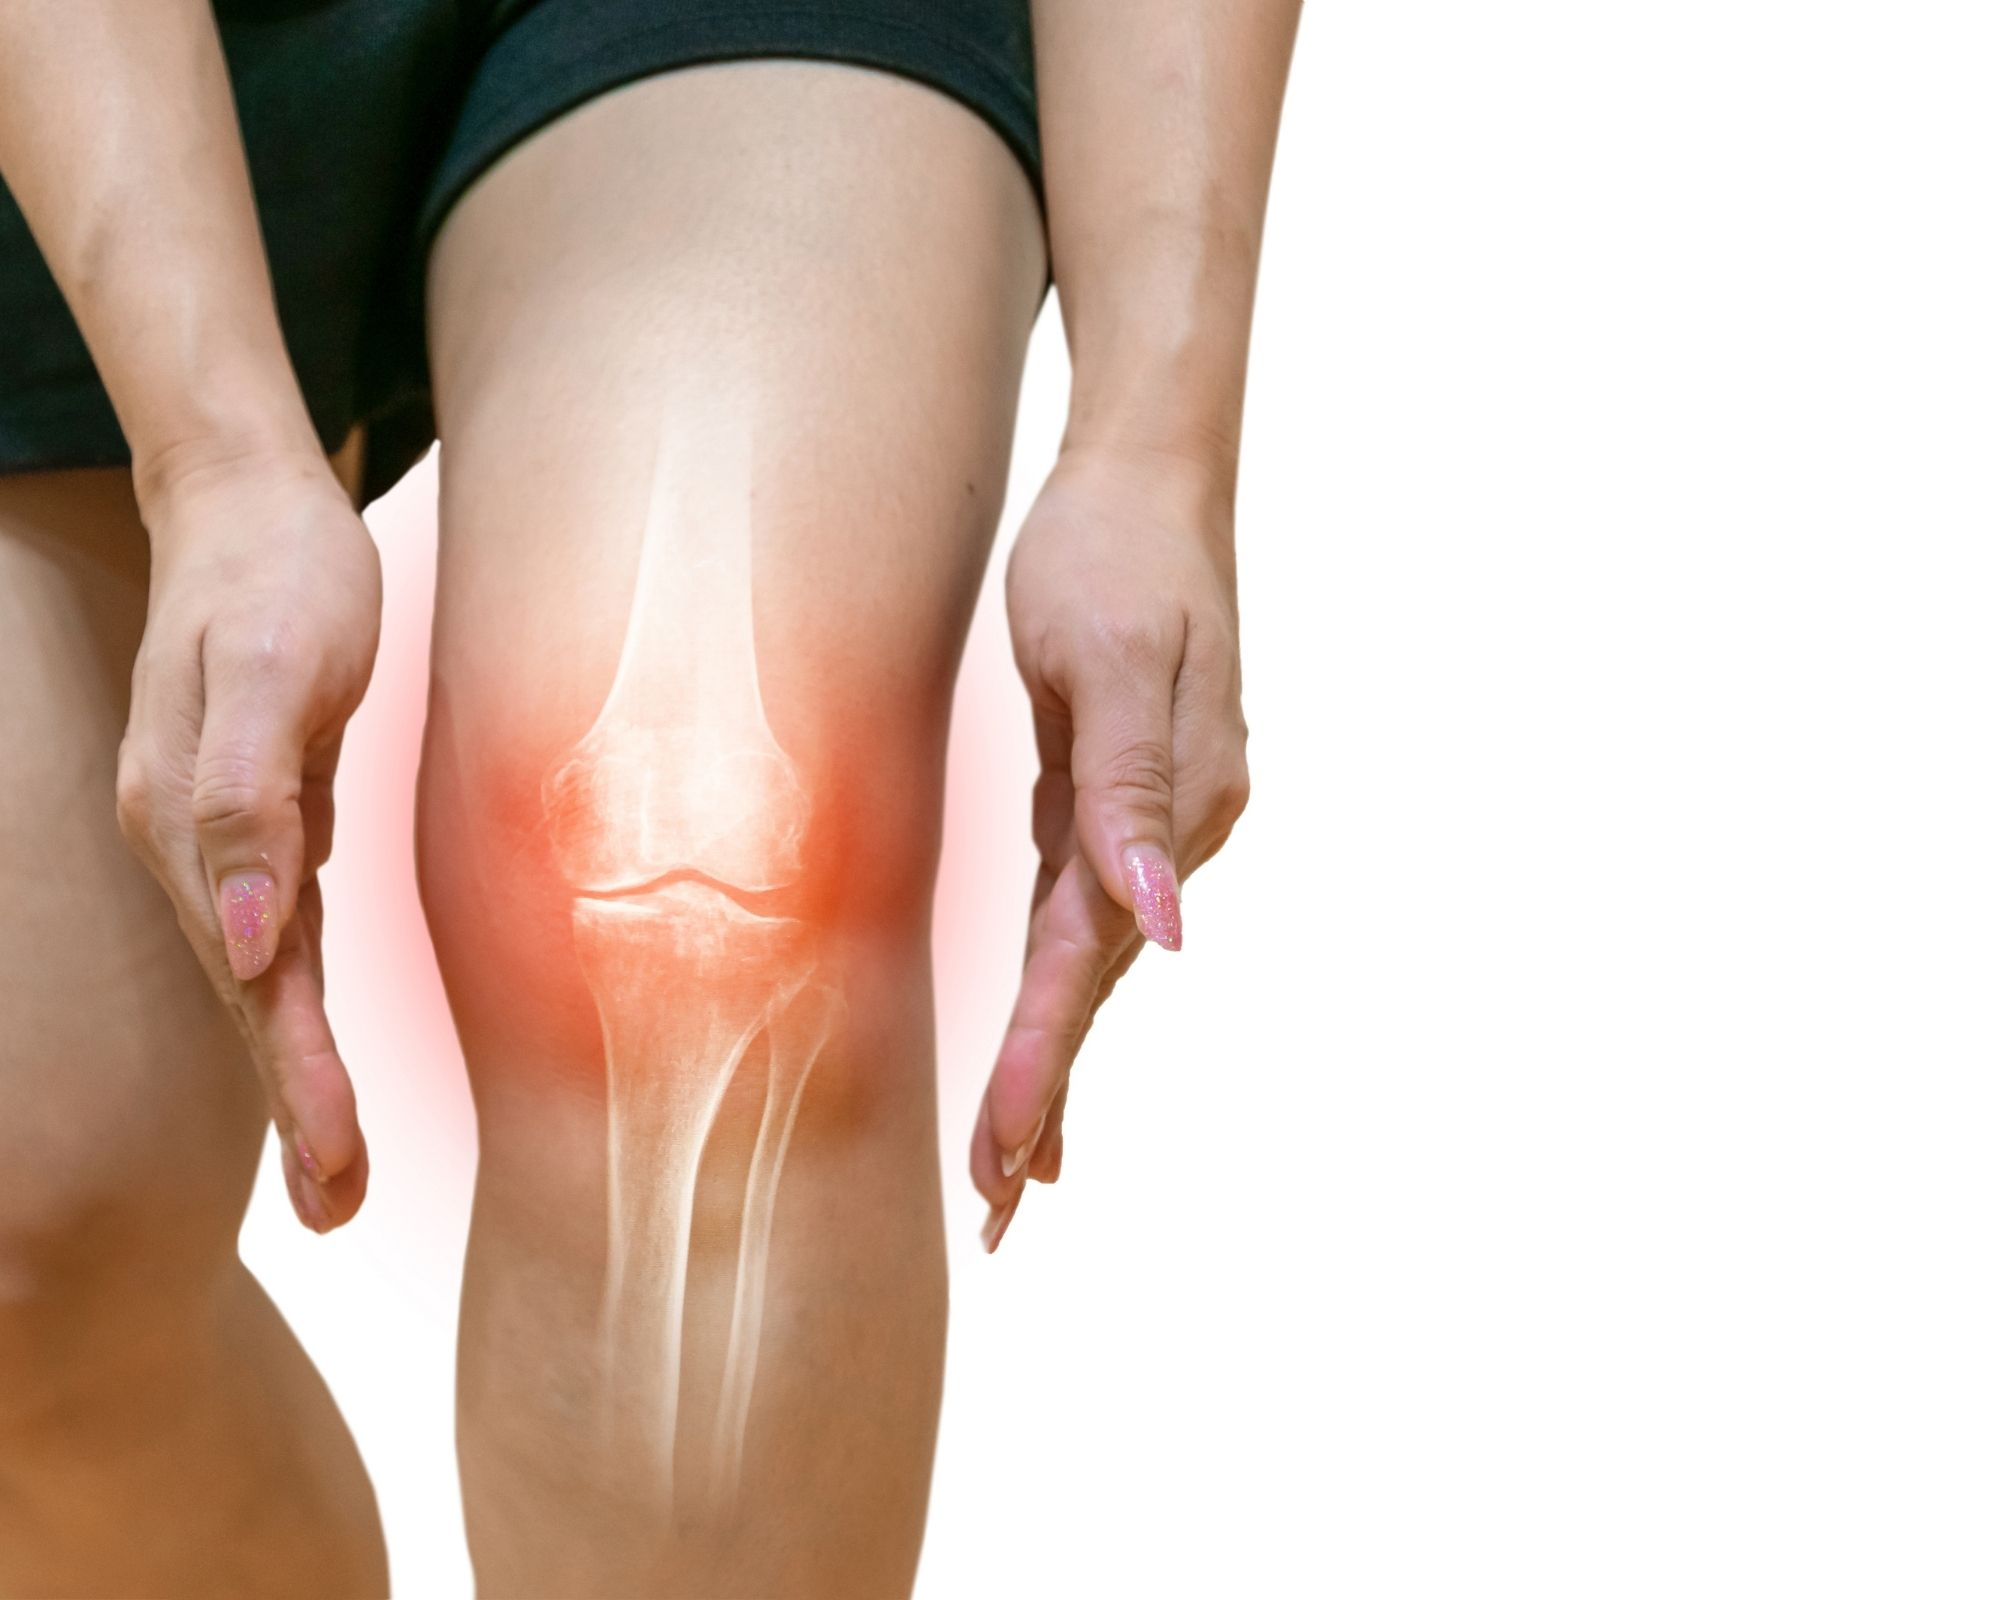 Knee highlighted in red to indicate pain from Osteoarthritis - Curcumin can help relieve the pain